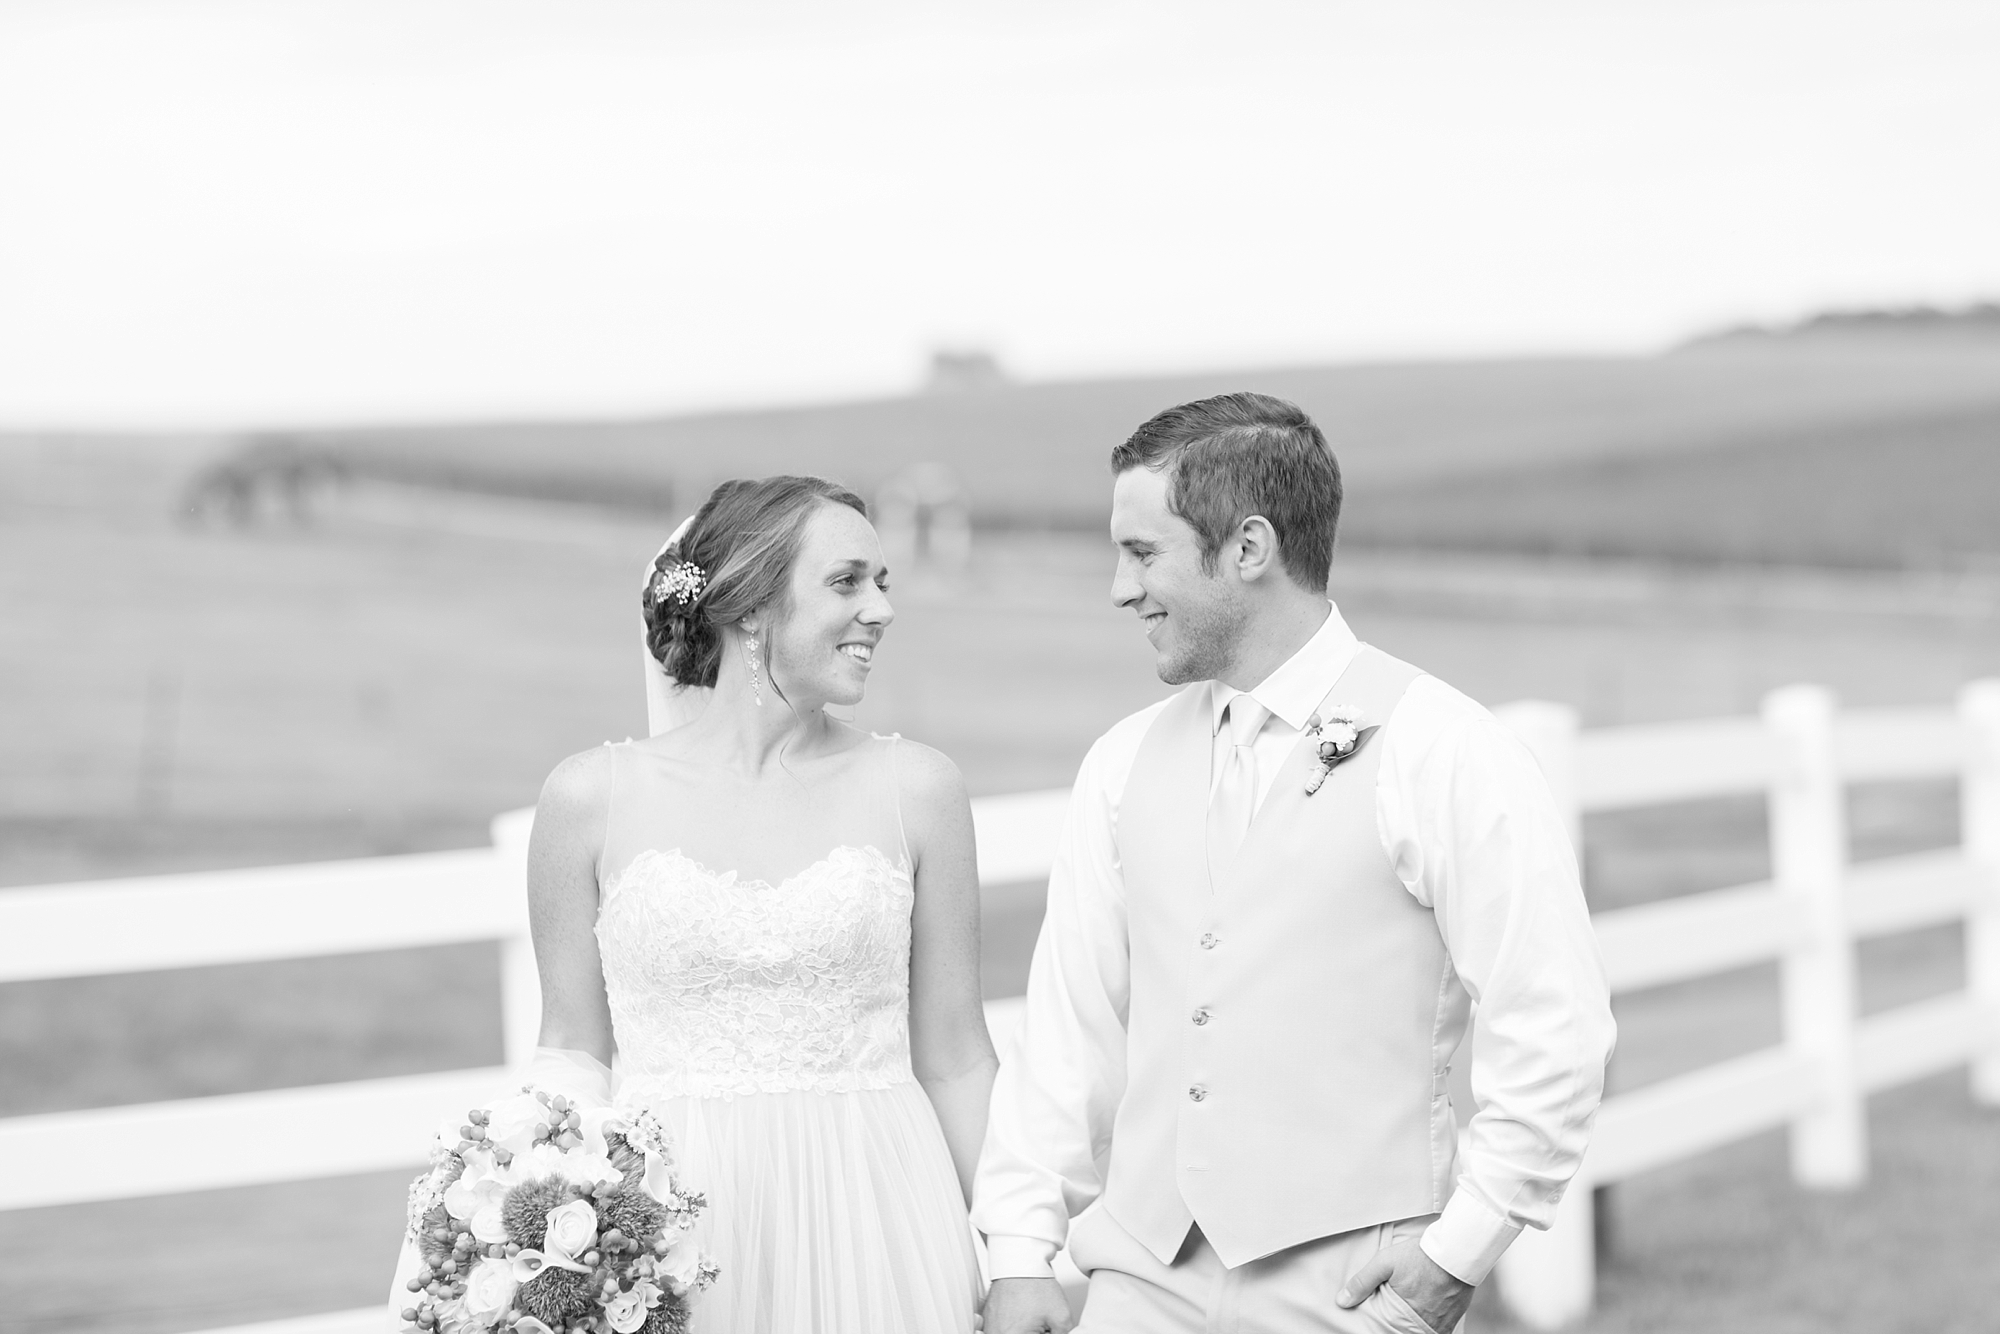 Herndon 5-Bride & Groom Portraits-805_anna grace photography baltimore maryland wedding photographer pond view farm photo.jpg